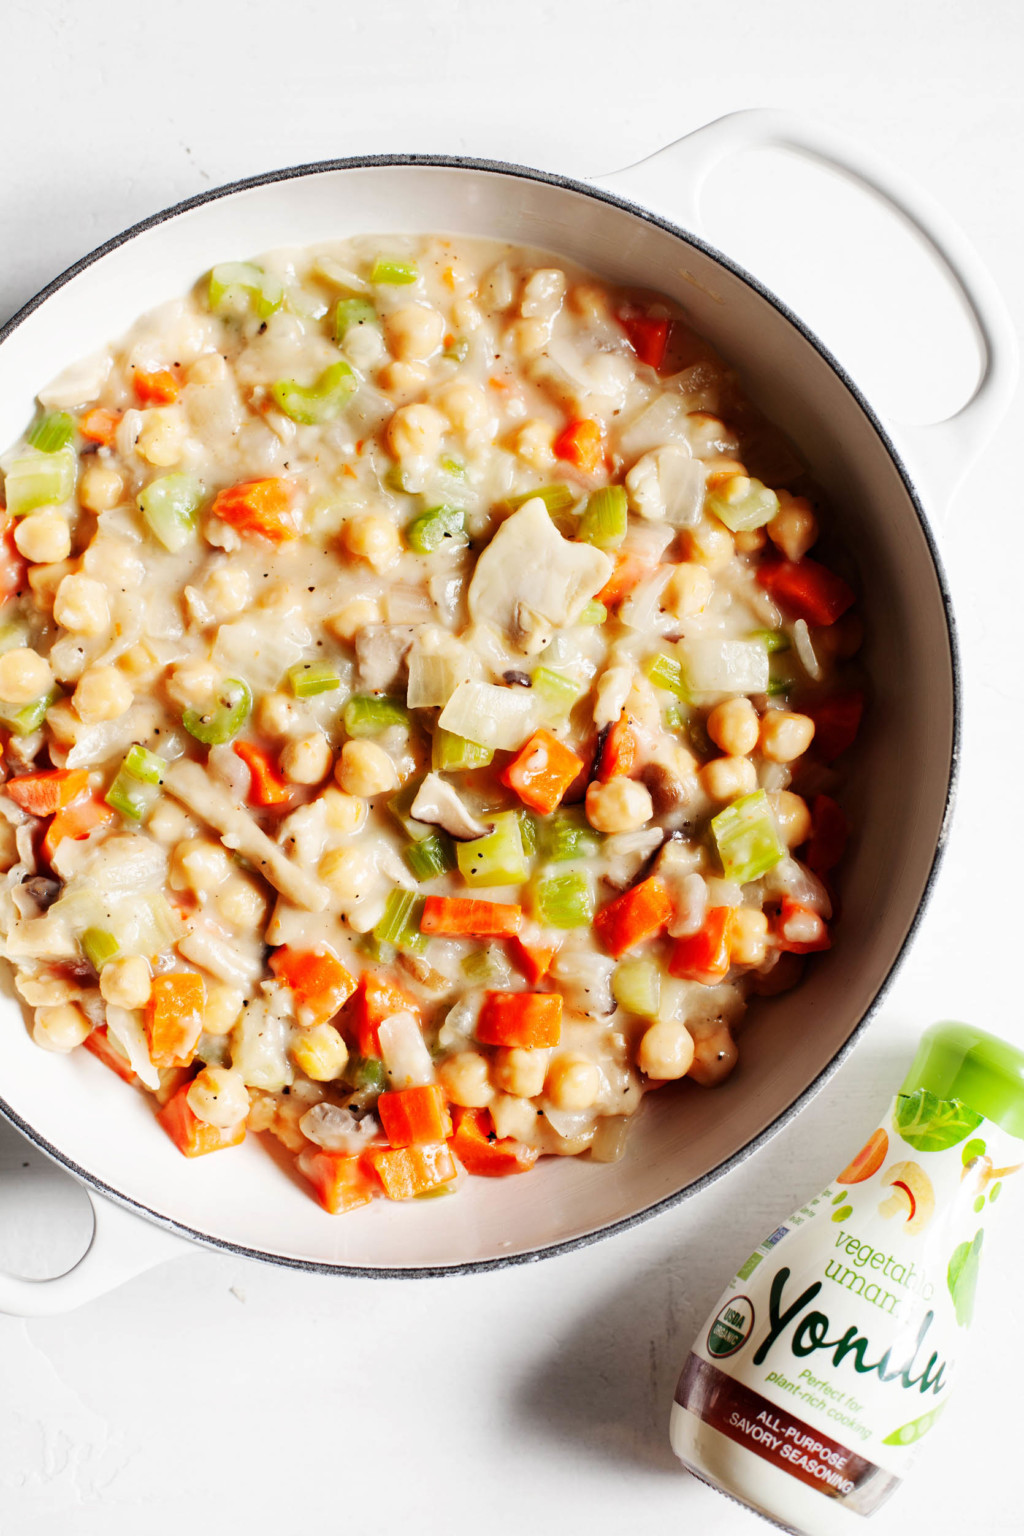 The round casserole is filled with vegetables and beans in a creamy sauce, and is packed with liquid seasonings.